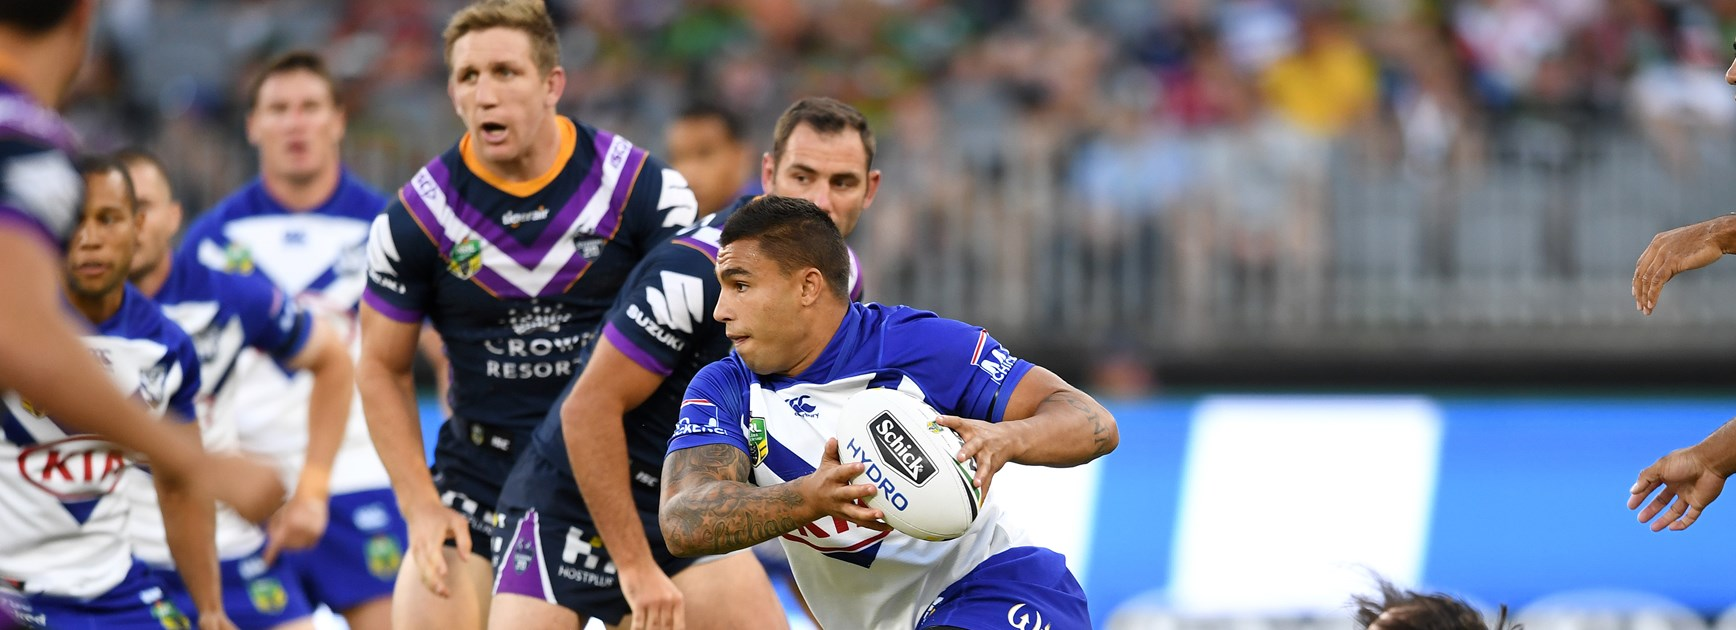 Storm pick up where they left off to defeat Bulldogs